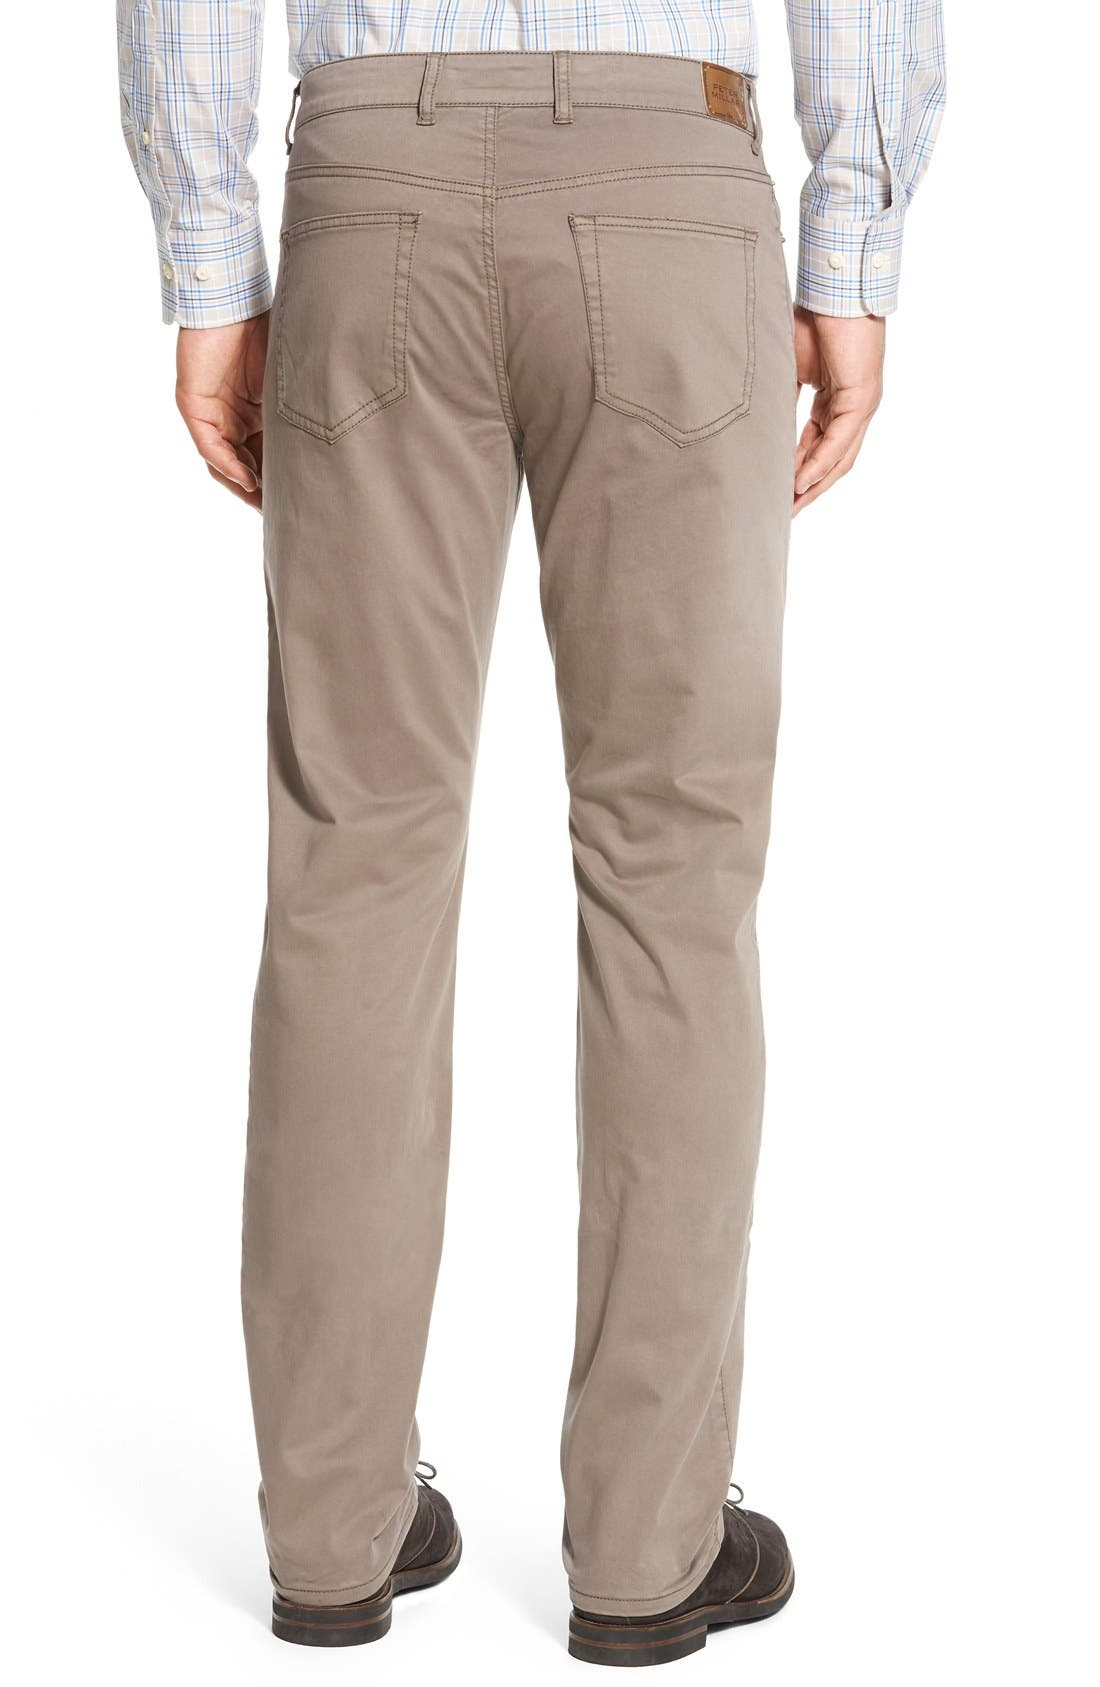 PETER MILLAR,                             Stretch Sateen Five Pocket Pants,                             Alternate thumbnail 3, color,                             020